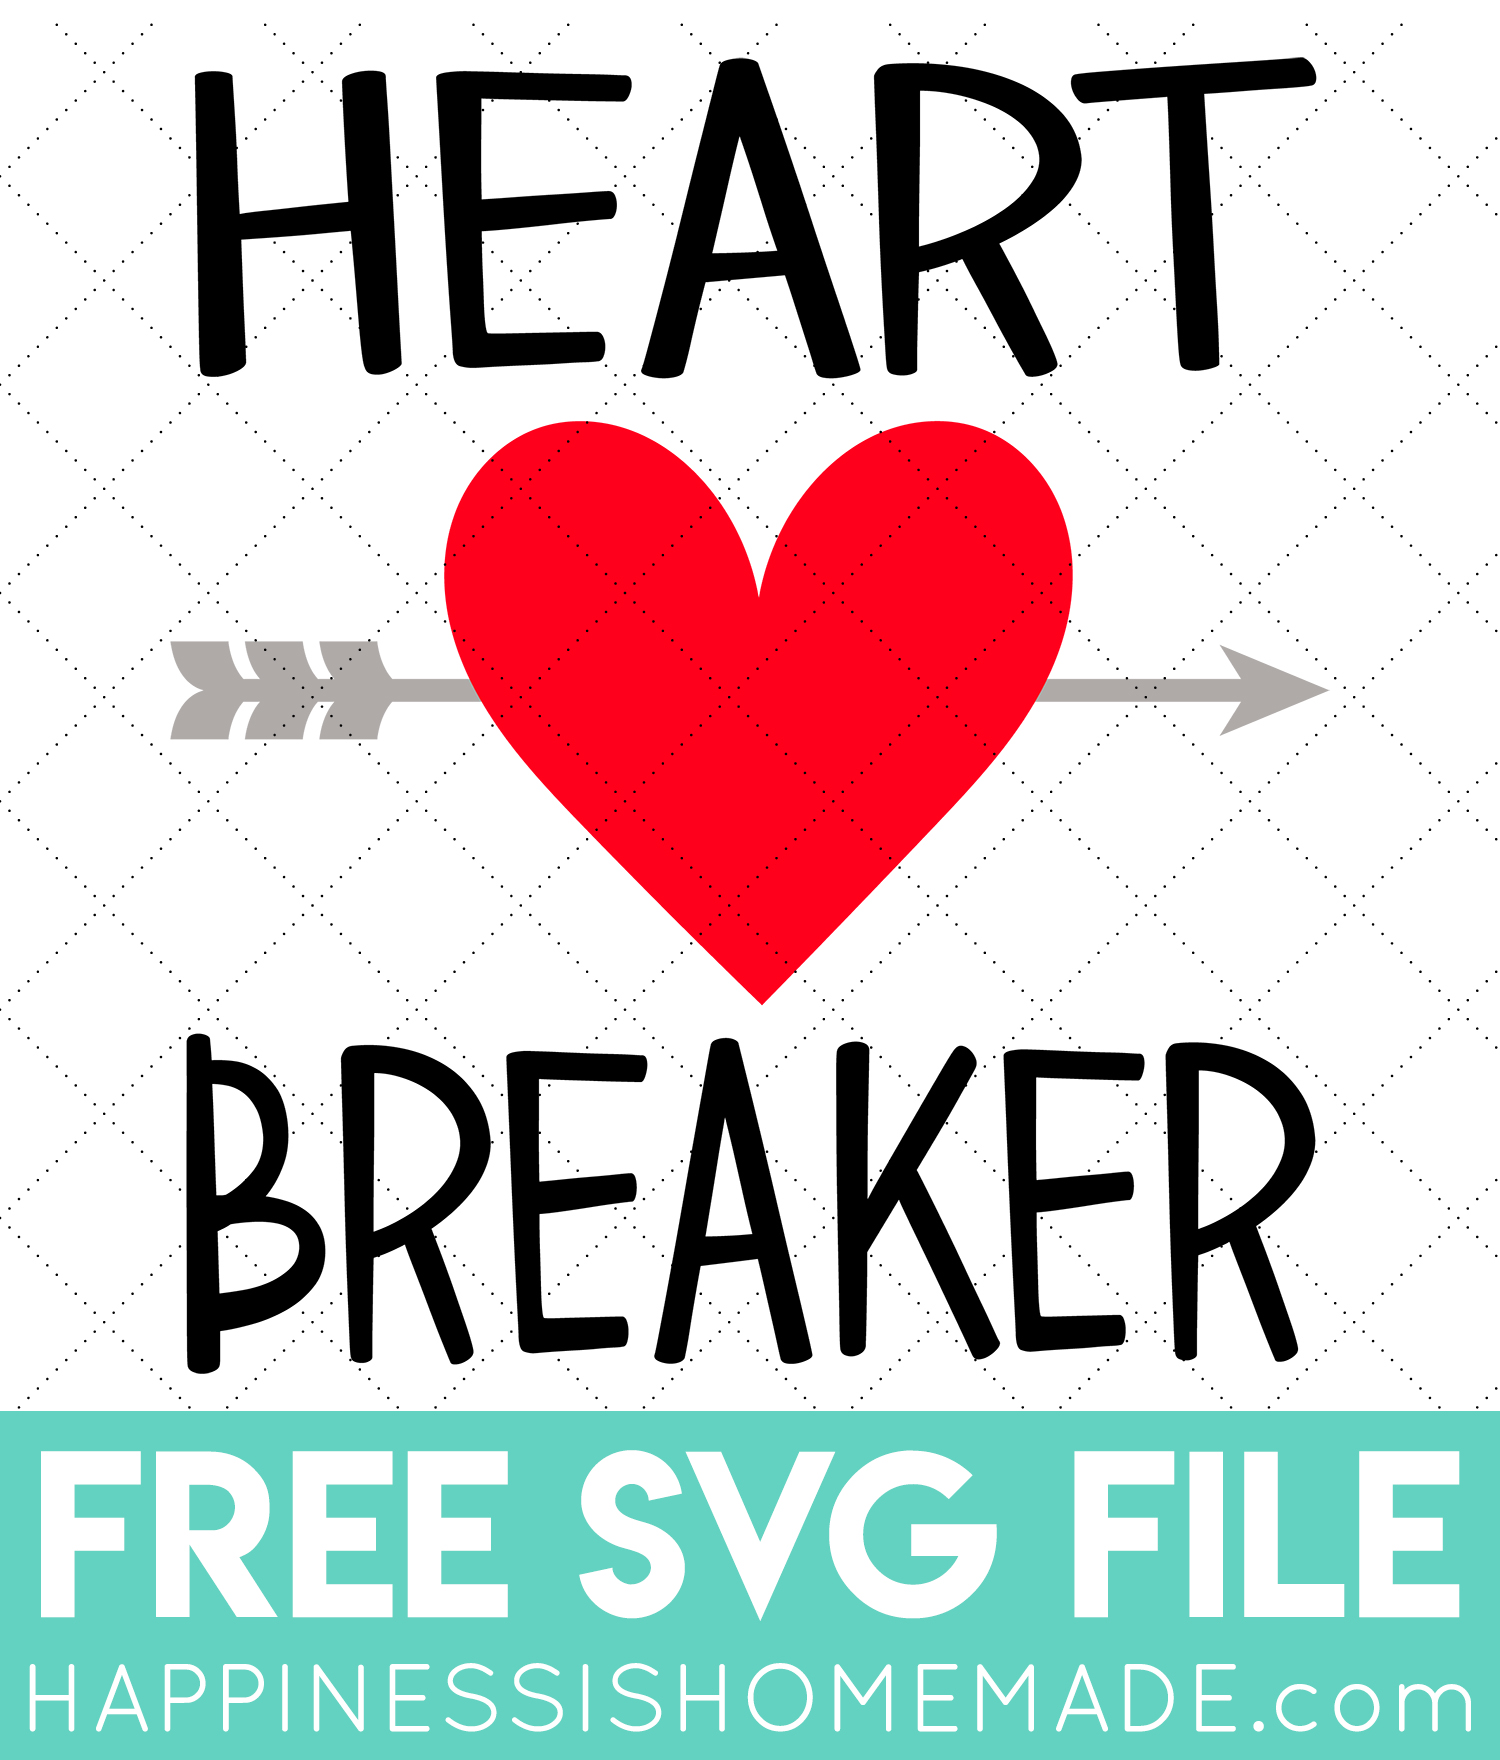 Free Valentine S Day Svgs Heart Breaker Shirt Happiness Is Homemade